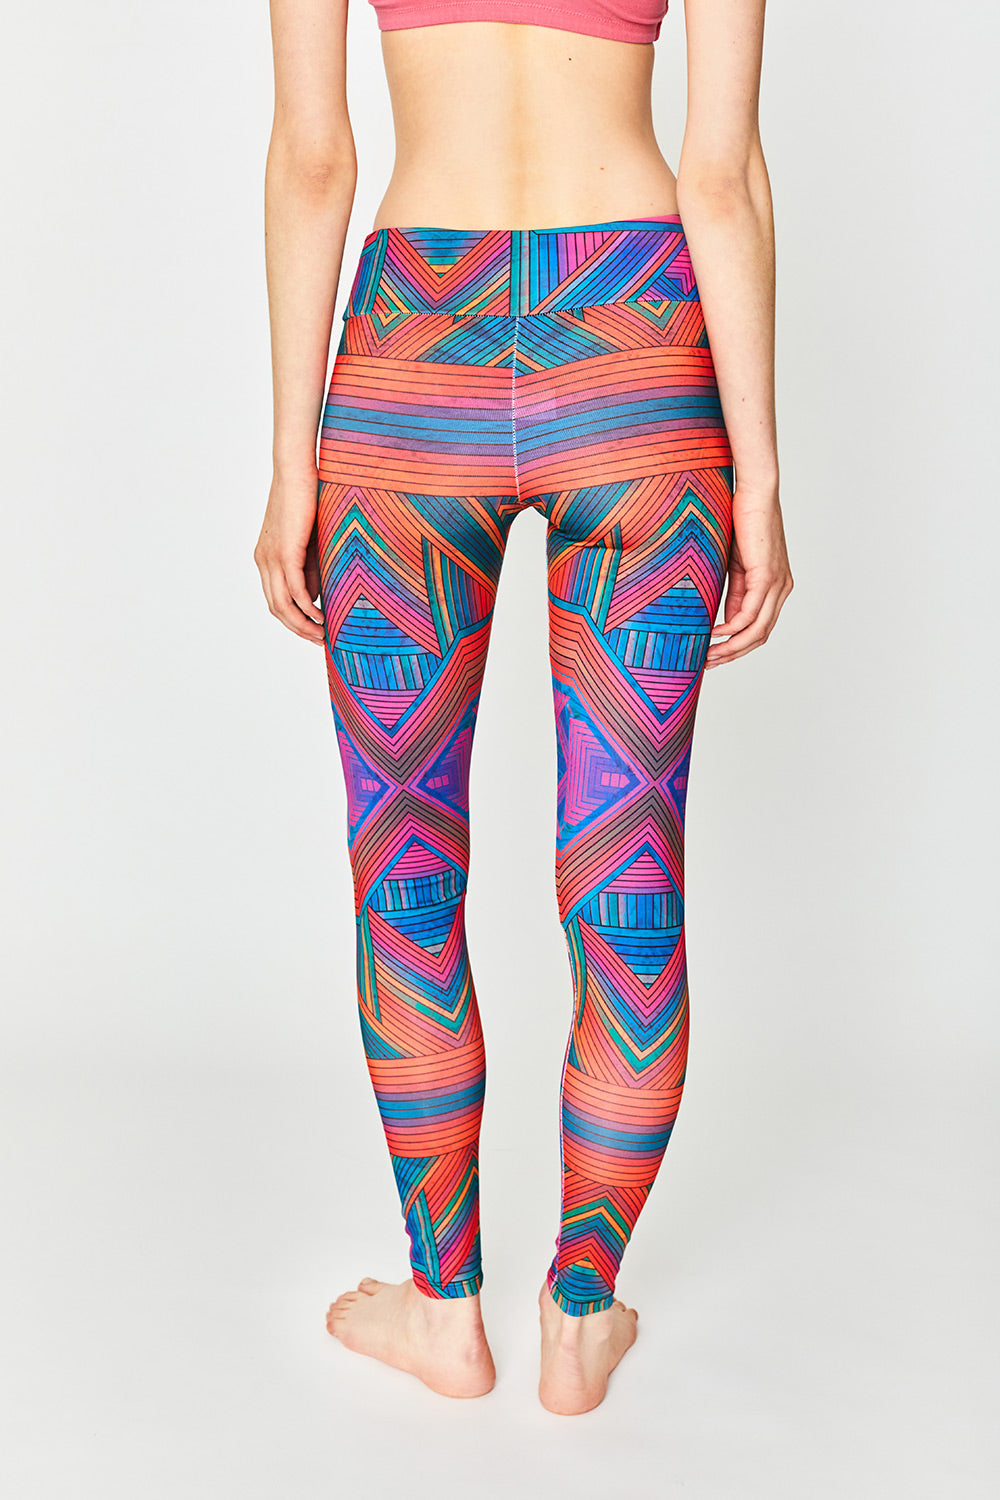 Non-Linear Thinking Fire Leggings